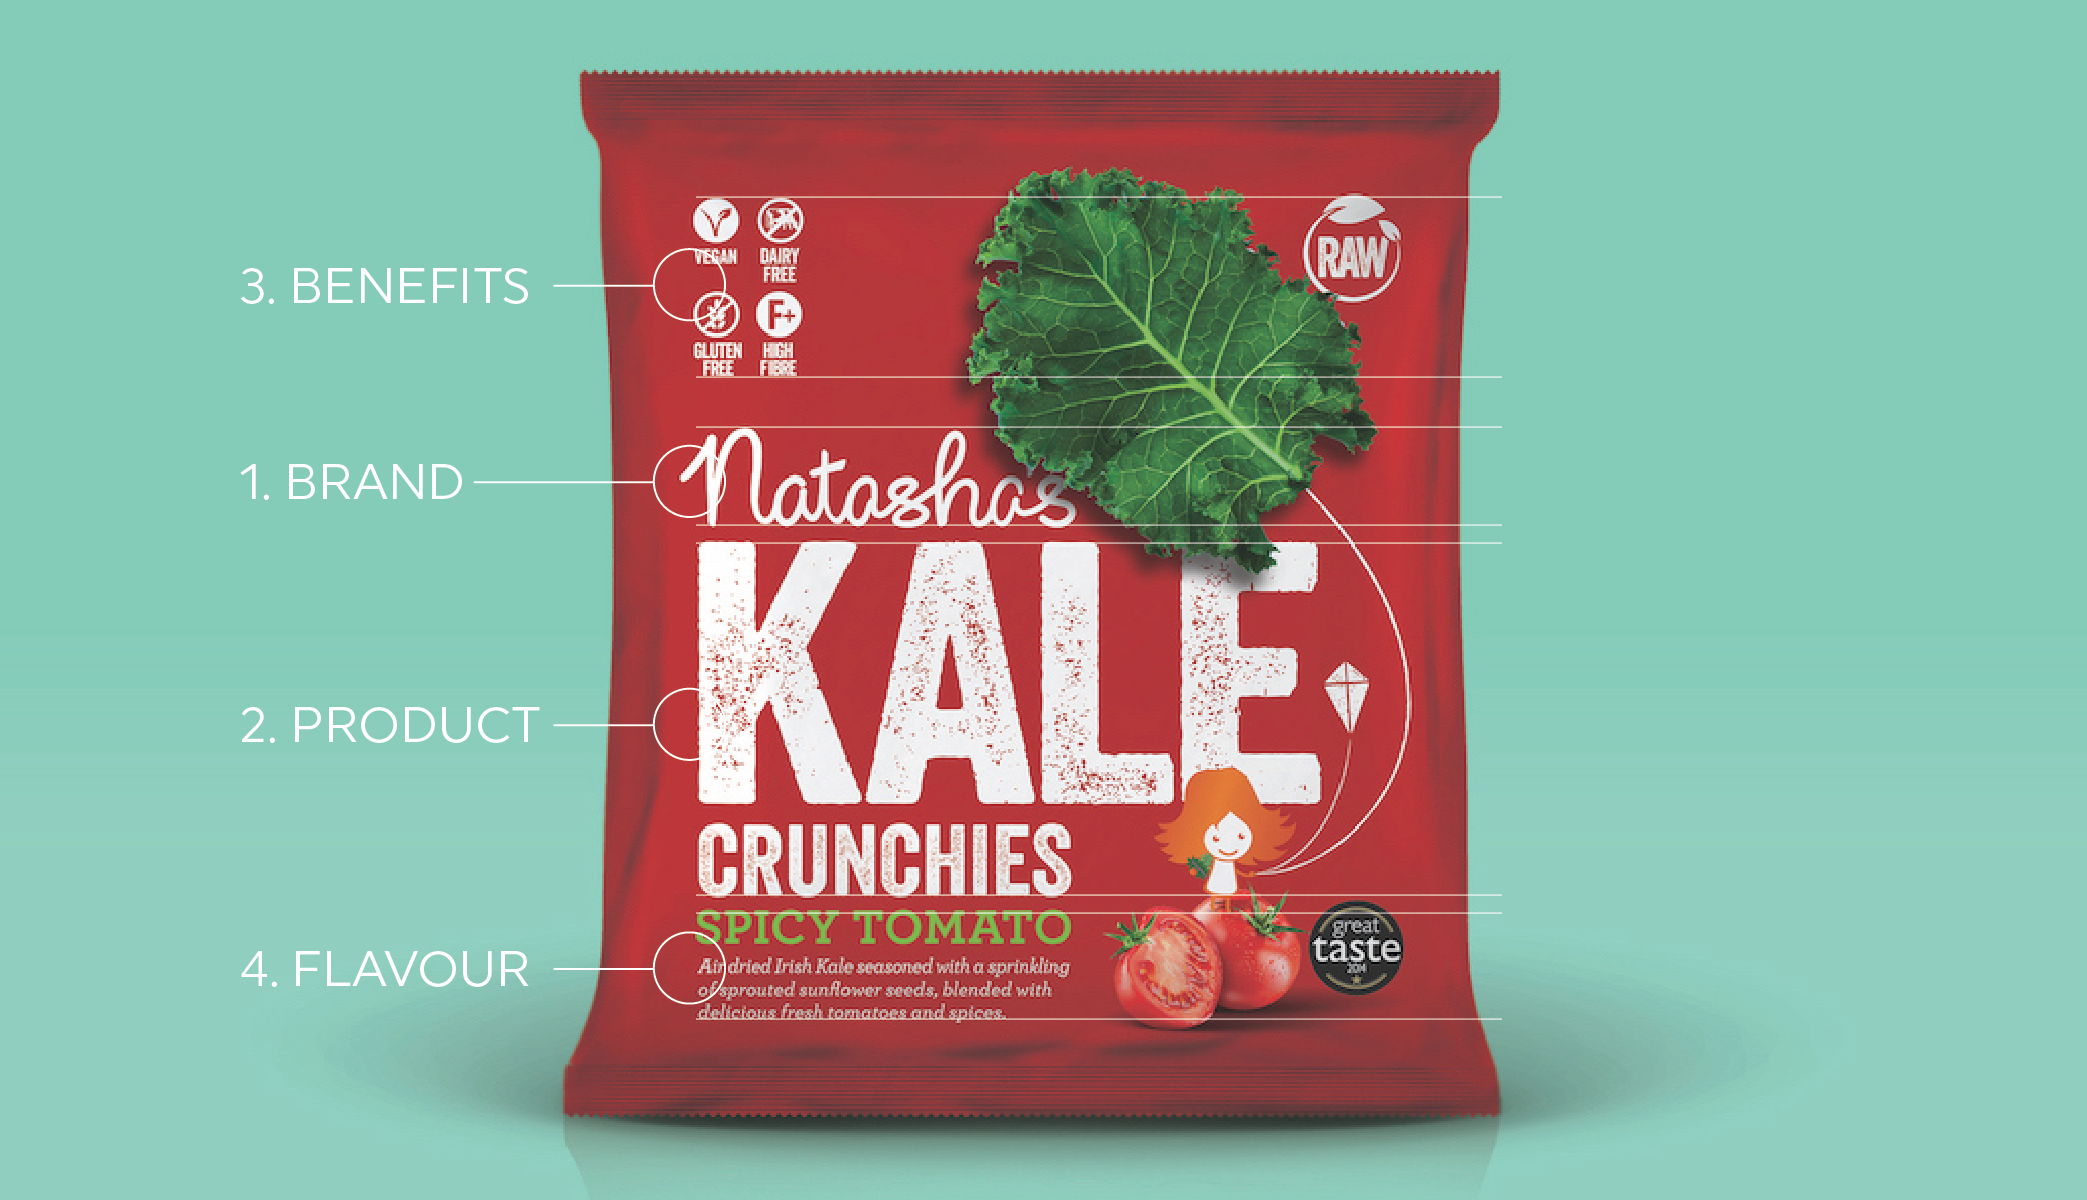 Natasha's Kale branding packaging